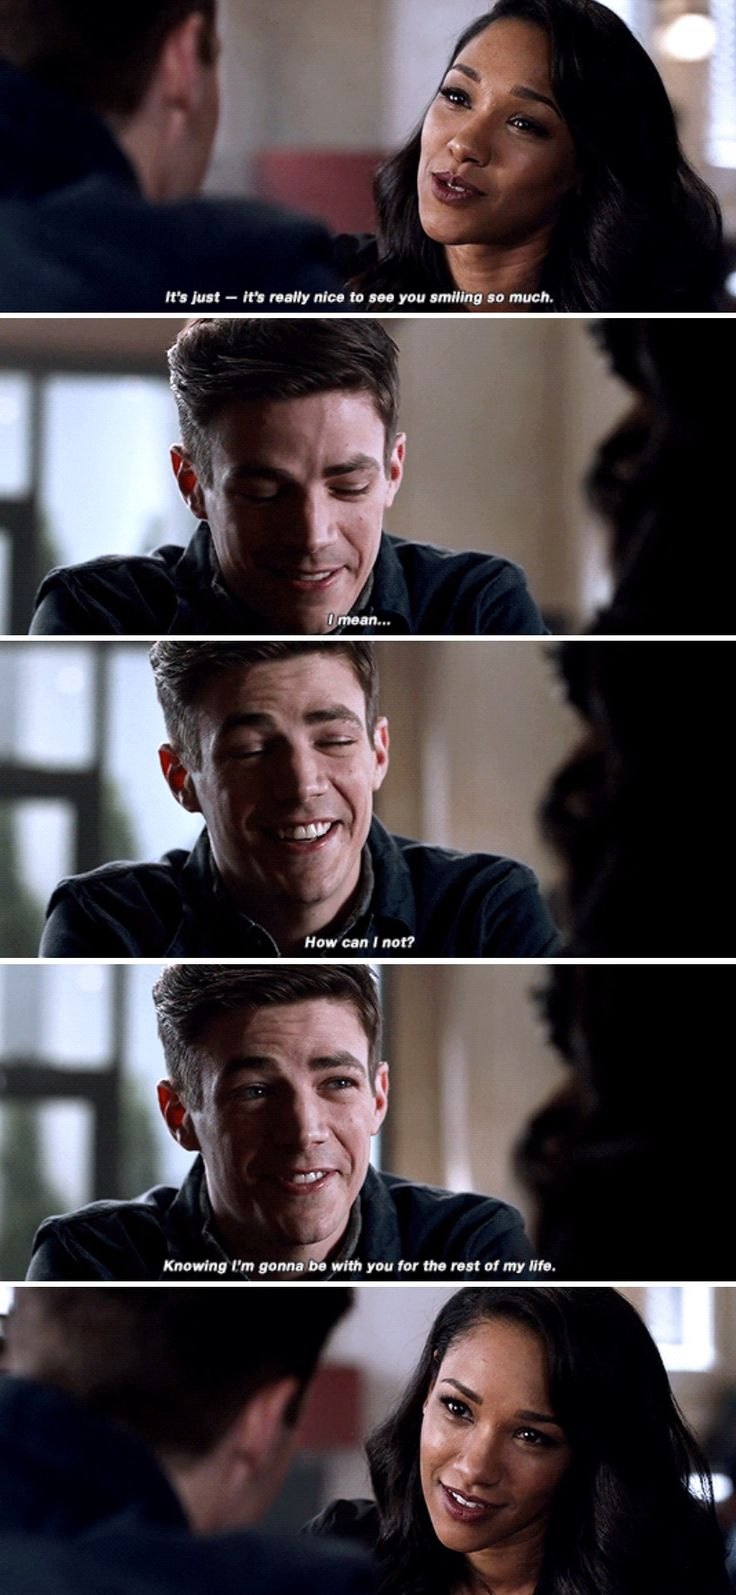 """""""It's really nice to see you smiling so much"""" - Iris and amnesic Barry #TheFlash"""